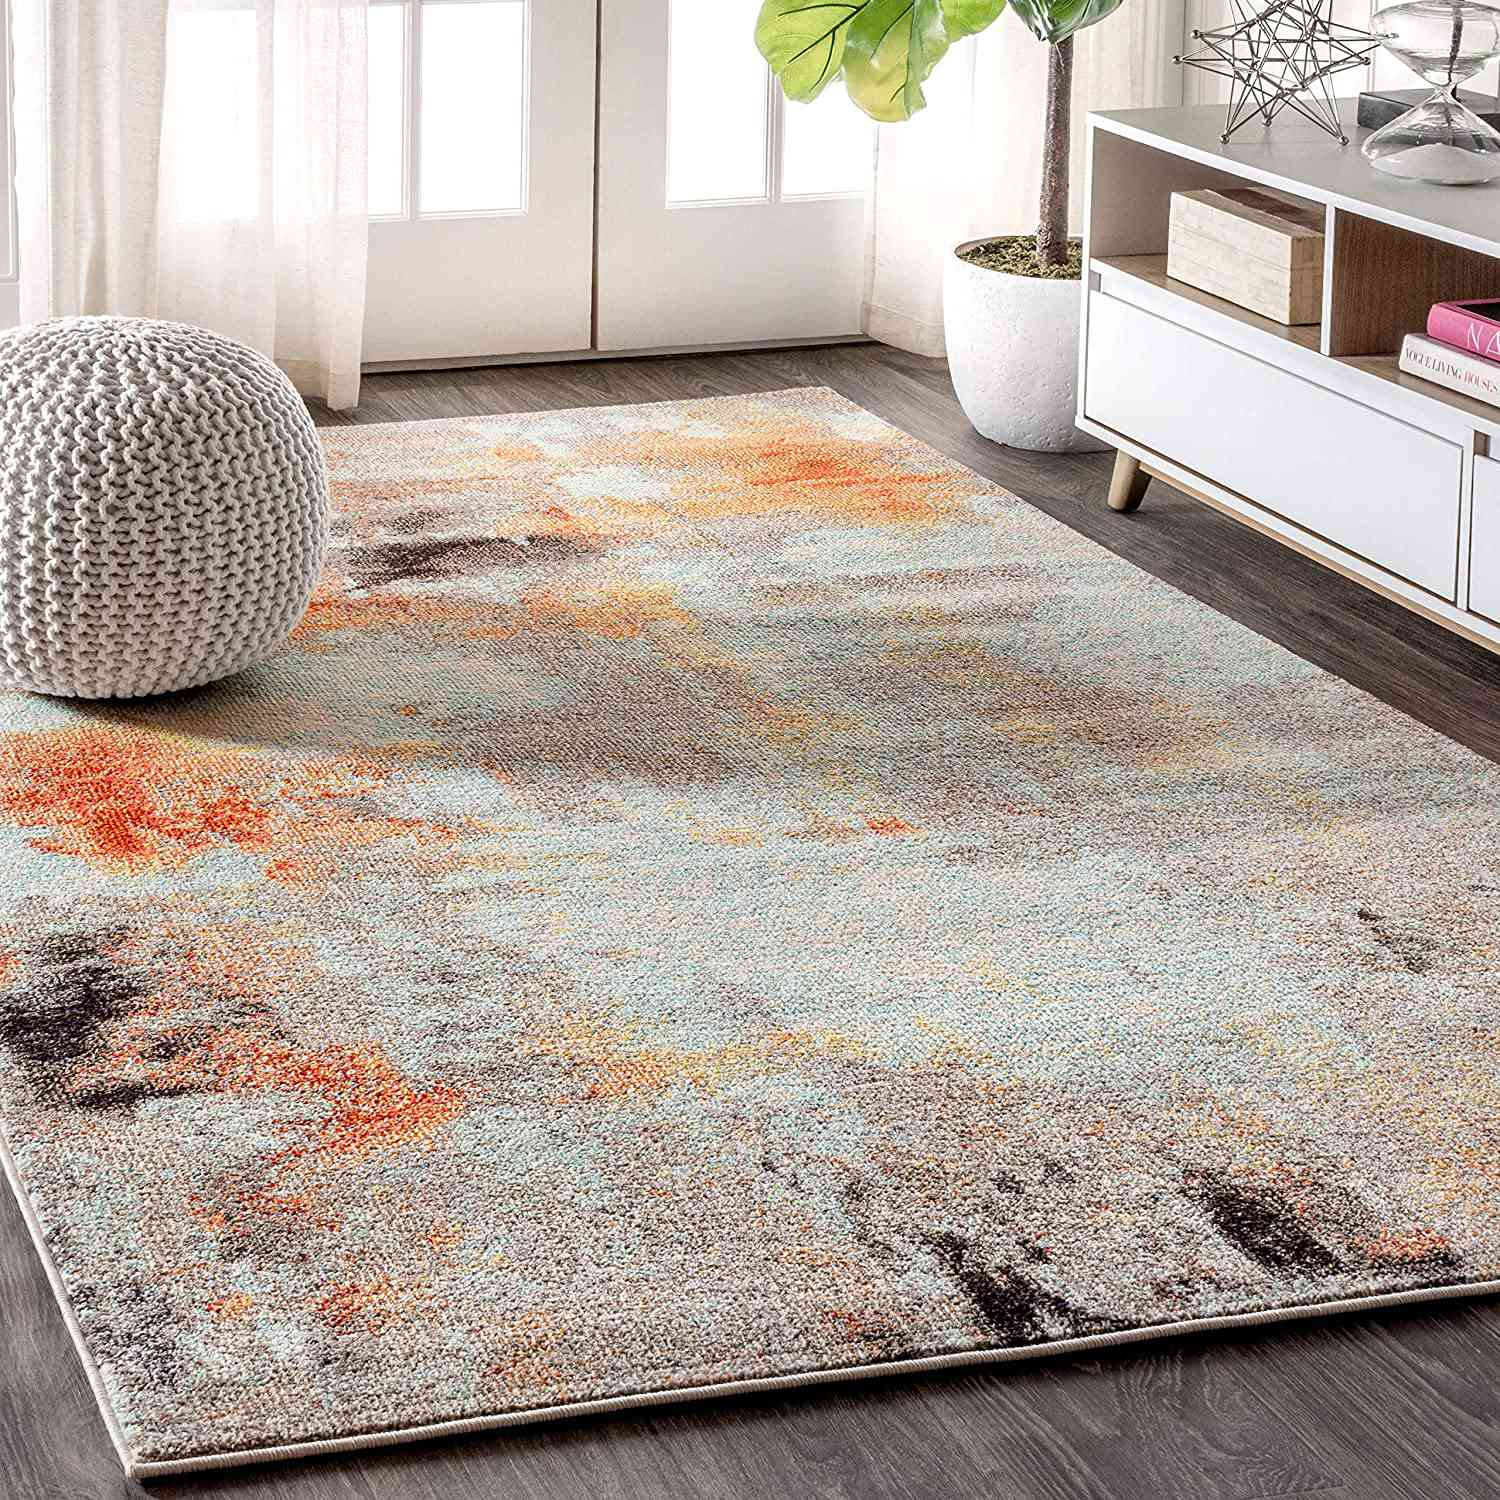 JONATHAN Y Contemporary POP Modern Abstract Vintage Area-Rug